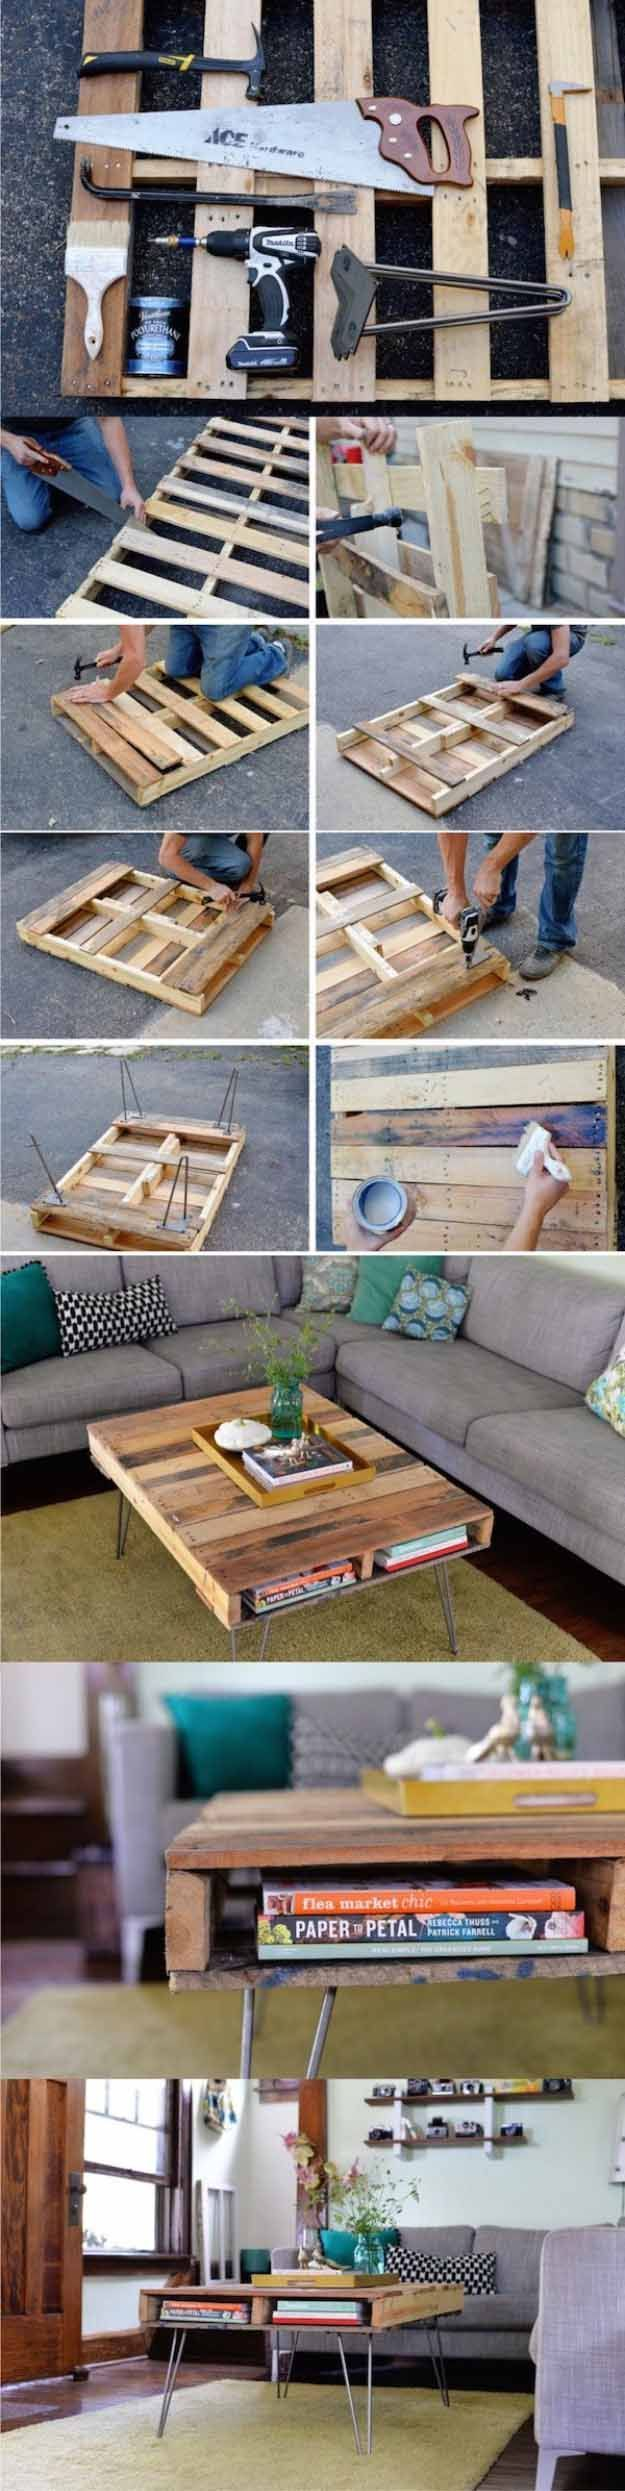 16 DIY Coffee Table Projects. Best 25  Diy furniture projects ideas on Pinterest   Furniture